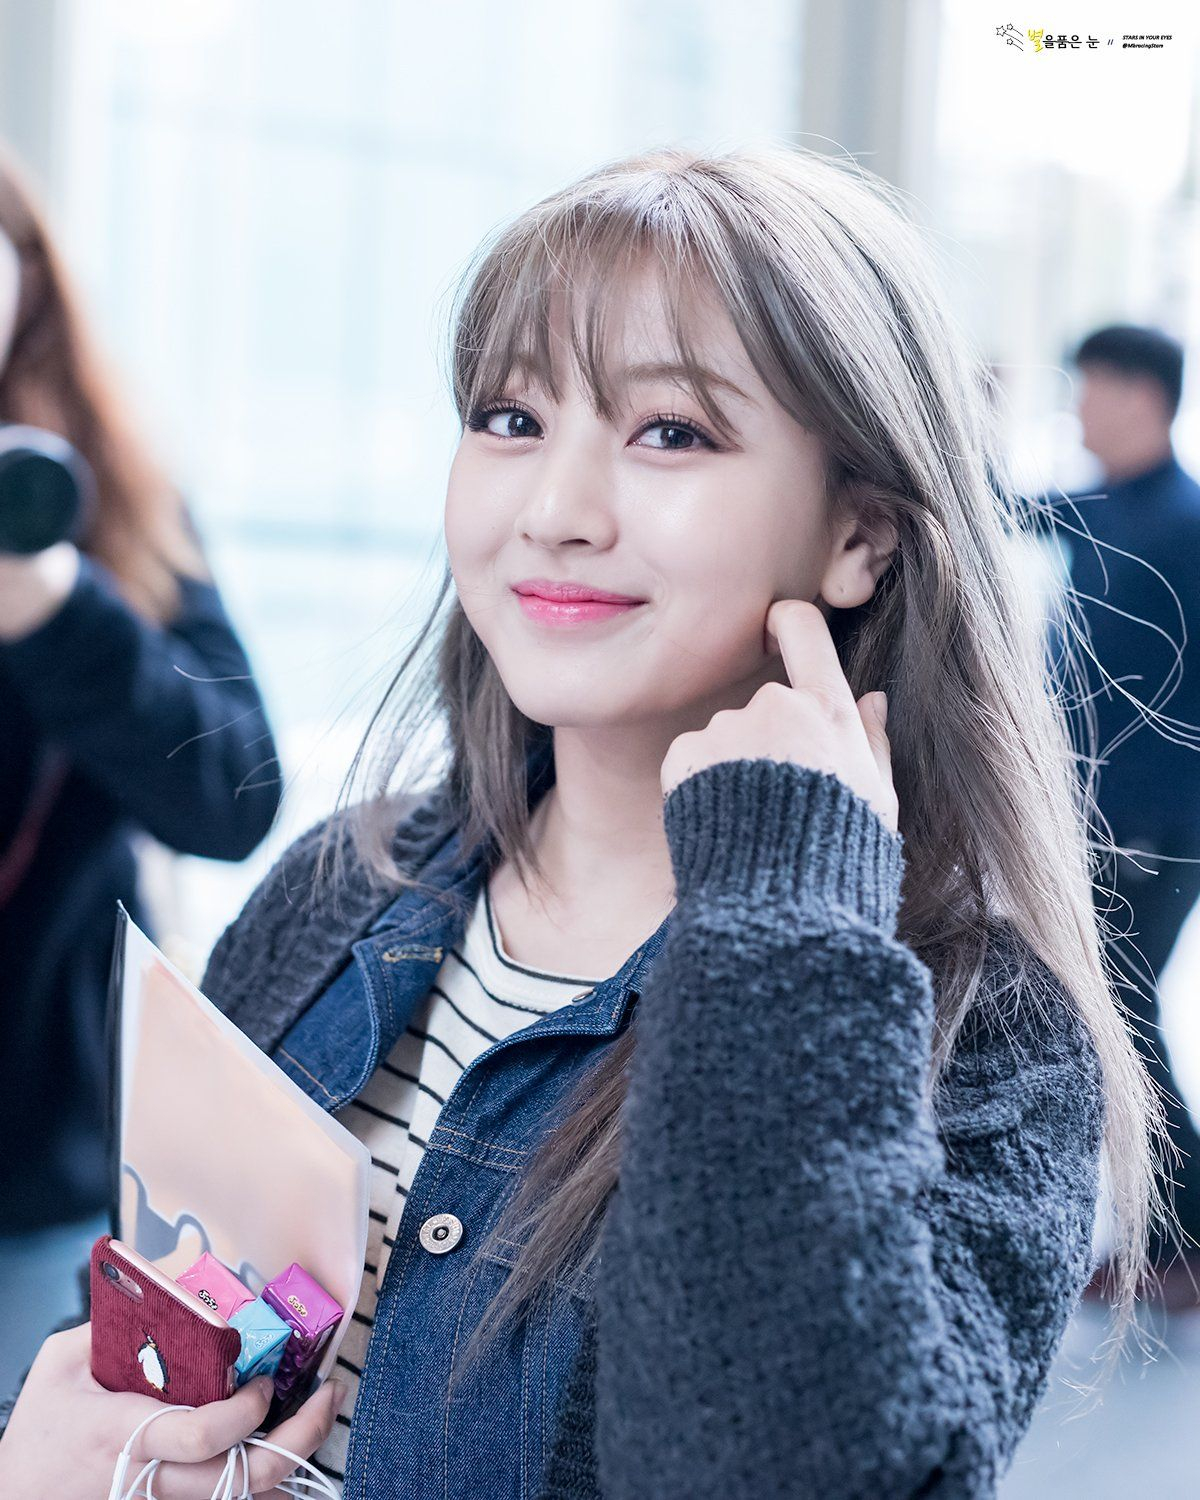 https://i1.wp.com/cdn.koreaboo.com/wp-content/uploads/2017/04/Jihyo.jpg